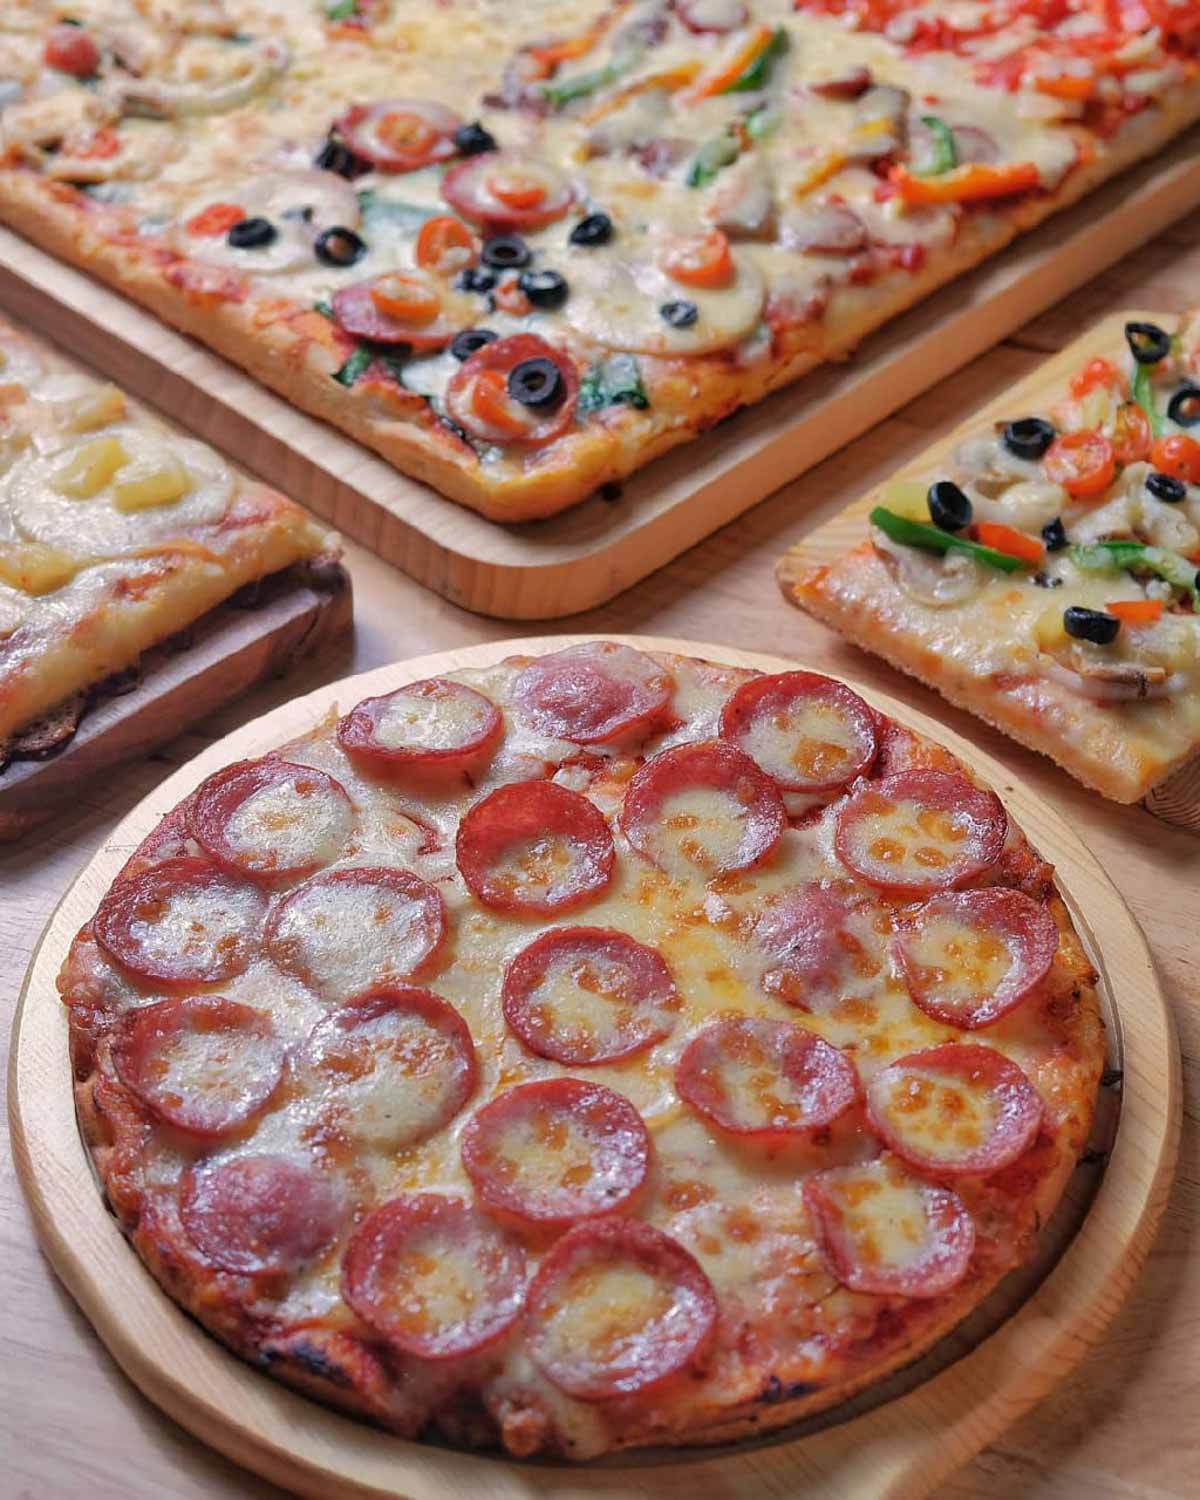 Kallang Wave Mall - Gourmet Pizza To Go